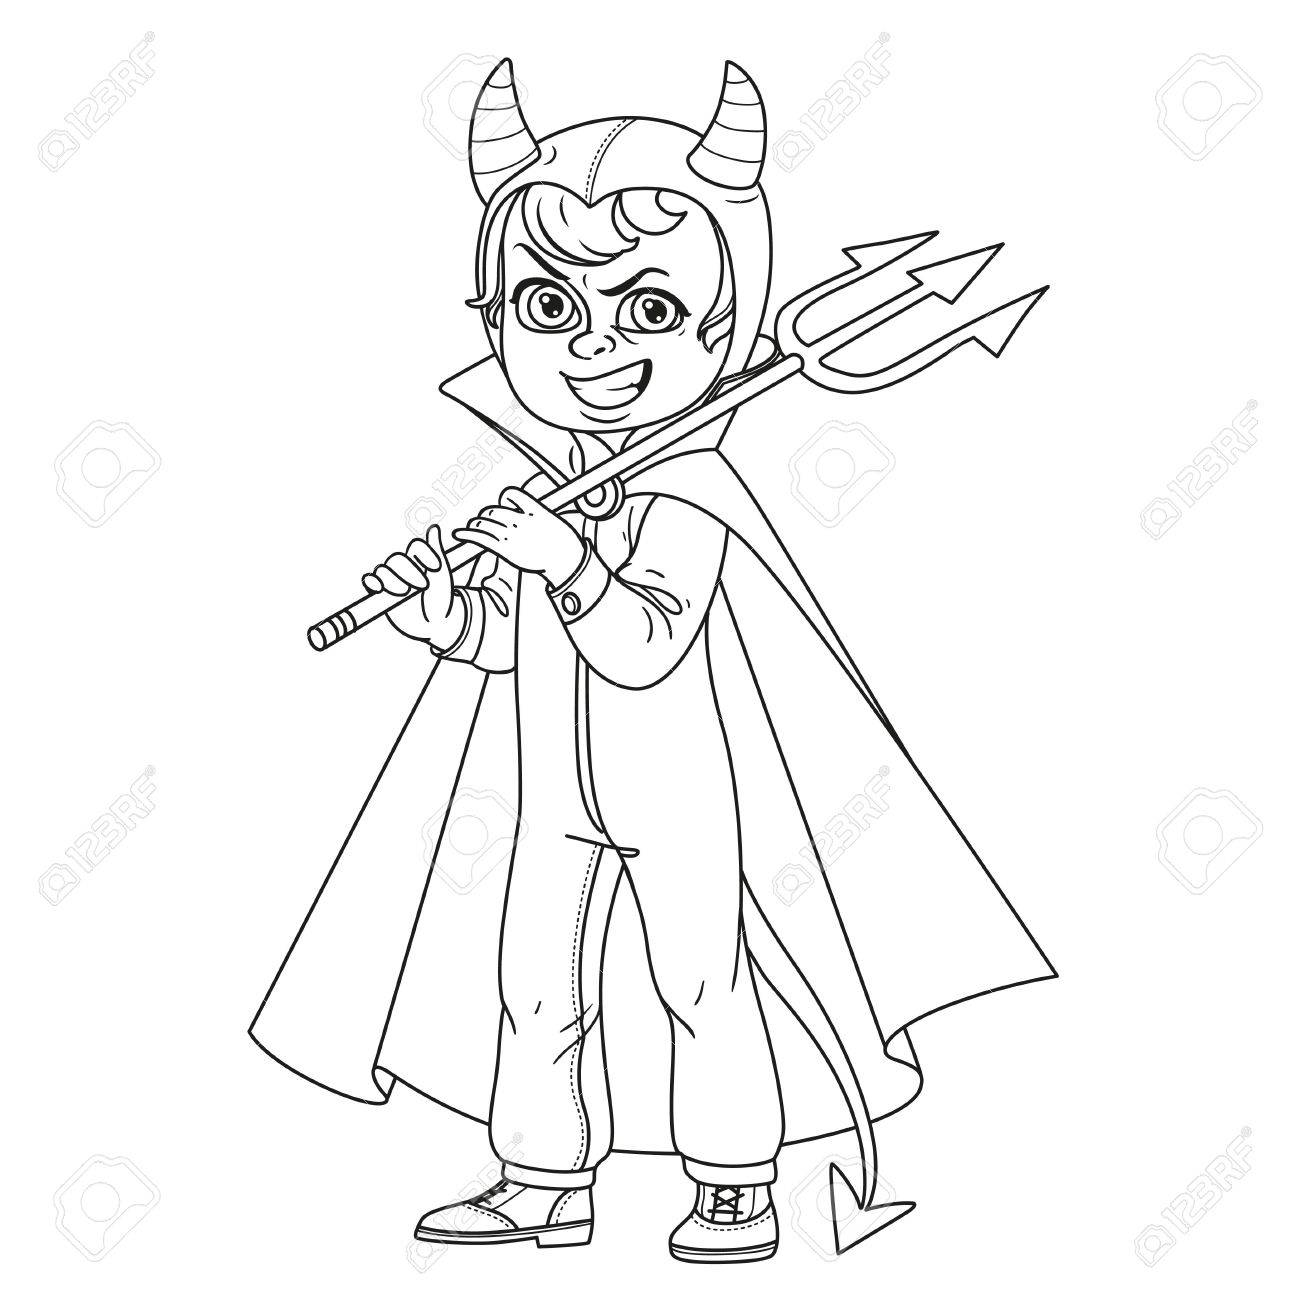 1300x1300 Cute Boy In Overalls Devil Costume With A Trident In His Hand